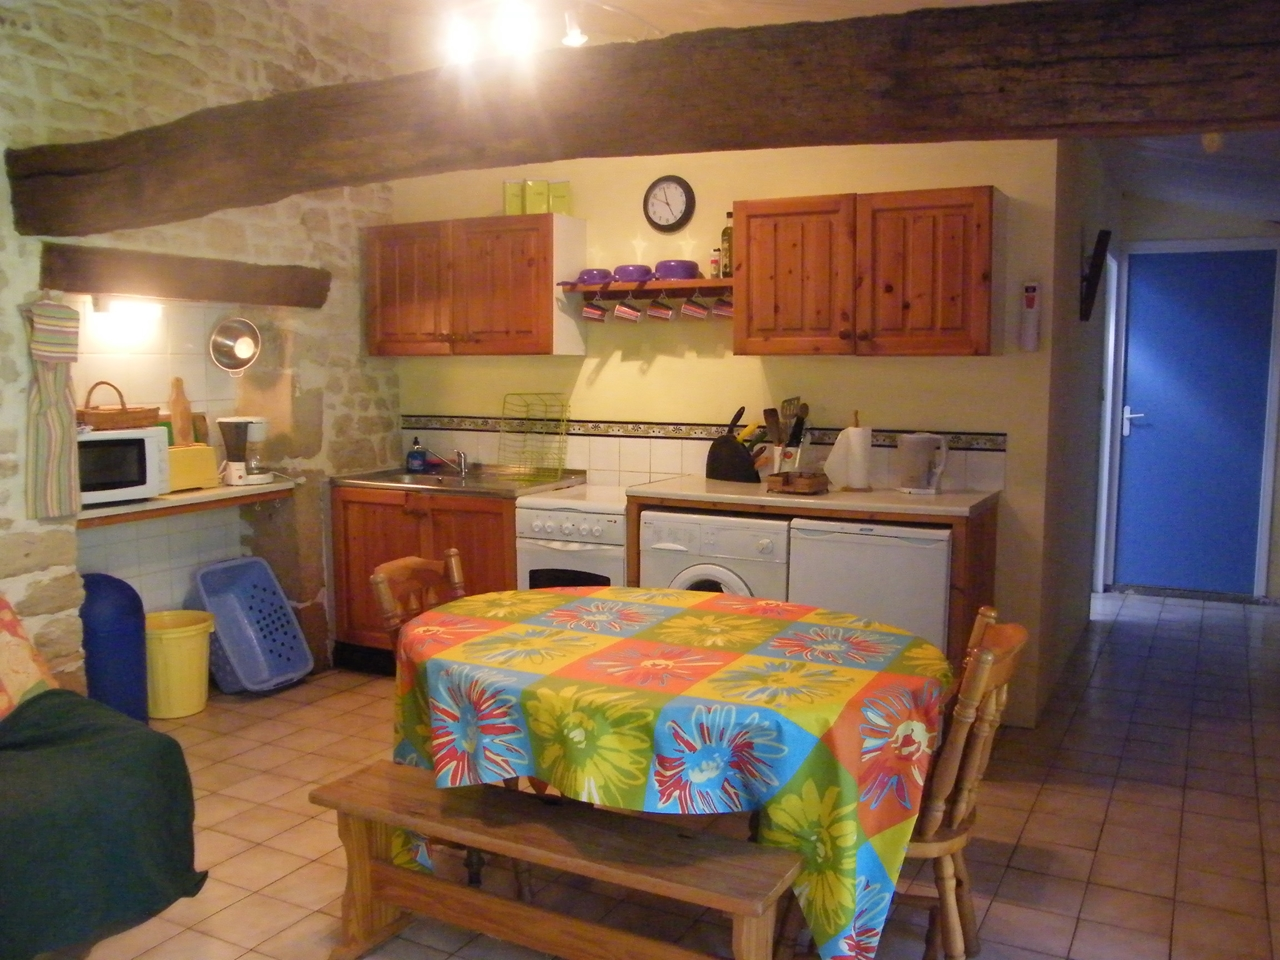 Le Jardin Clos - kitchen area